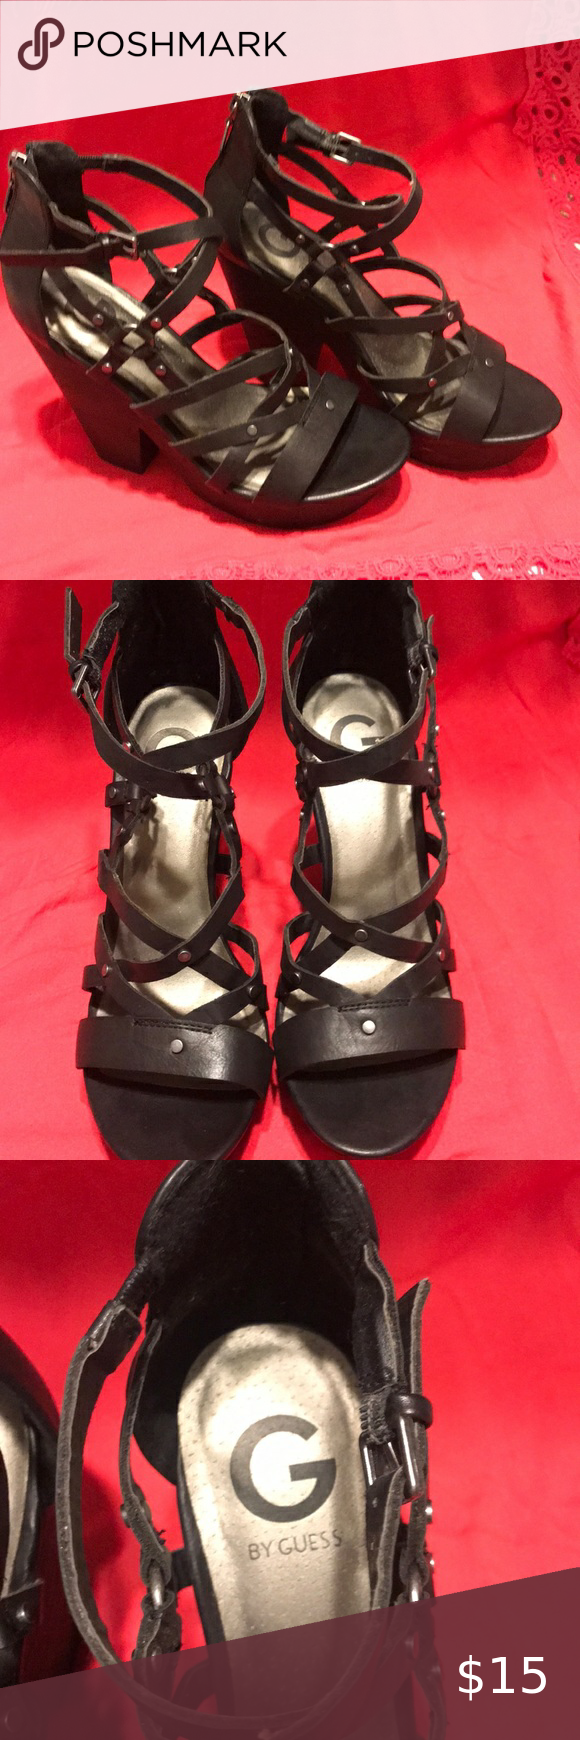 Guess Heels Like new, 5 inch Guess Shoes Heels #myposhpicks